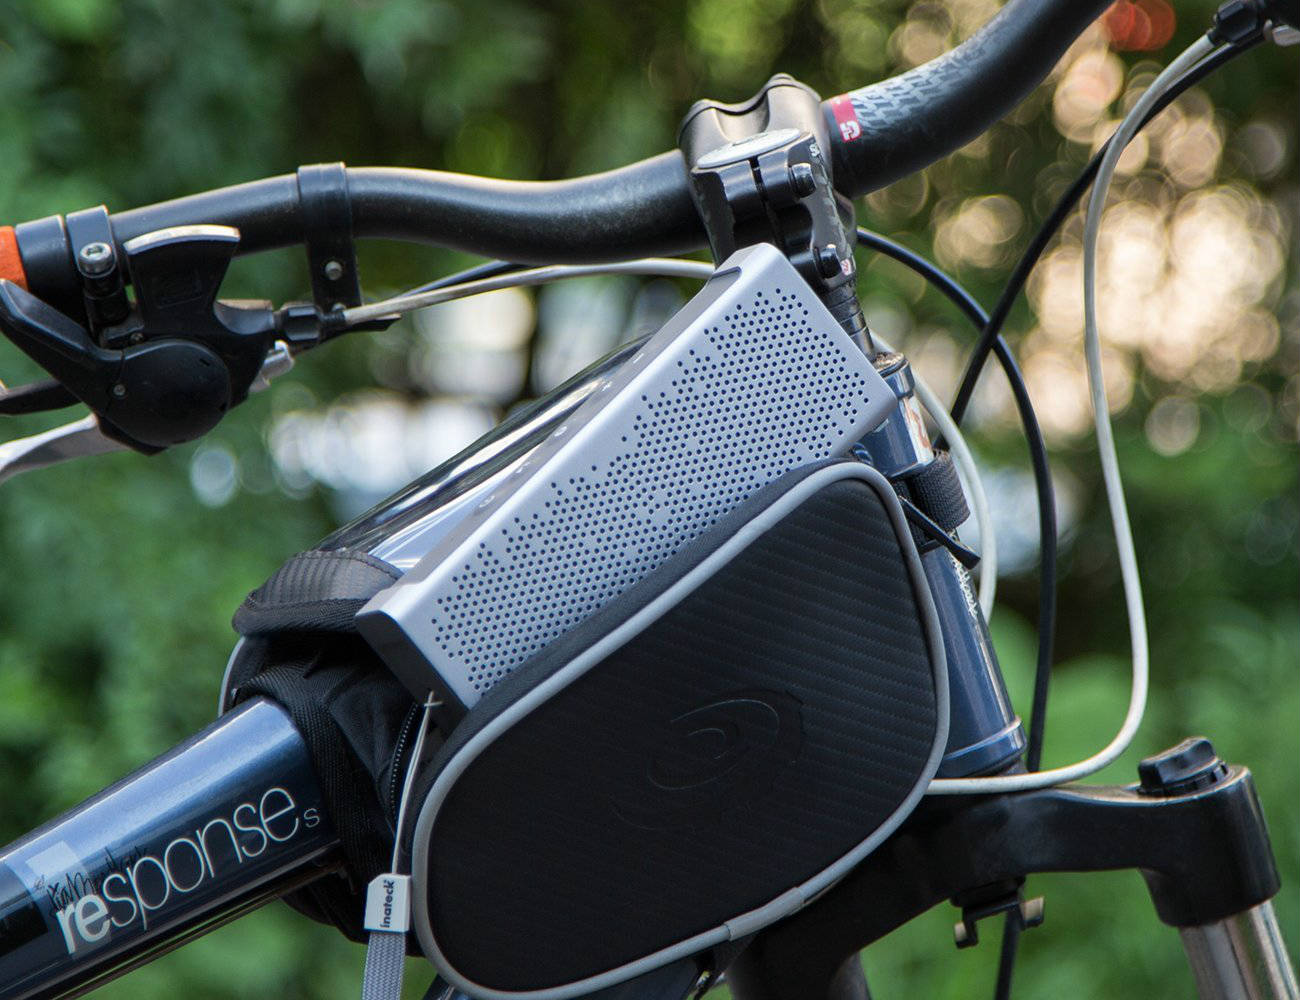 Waterproof+Portable+Speaker+From+Inateck